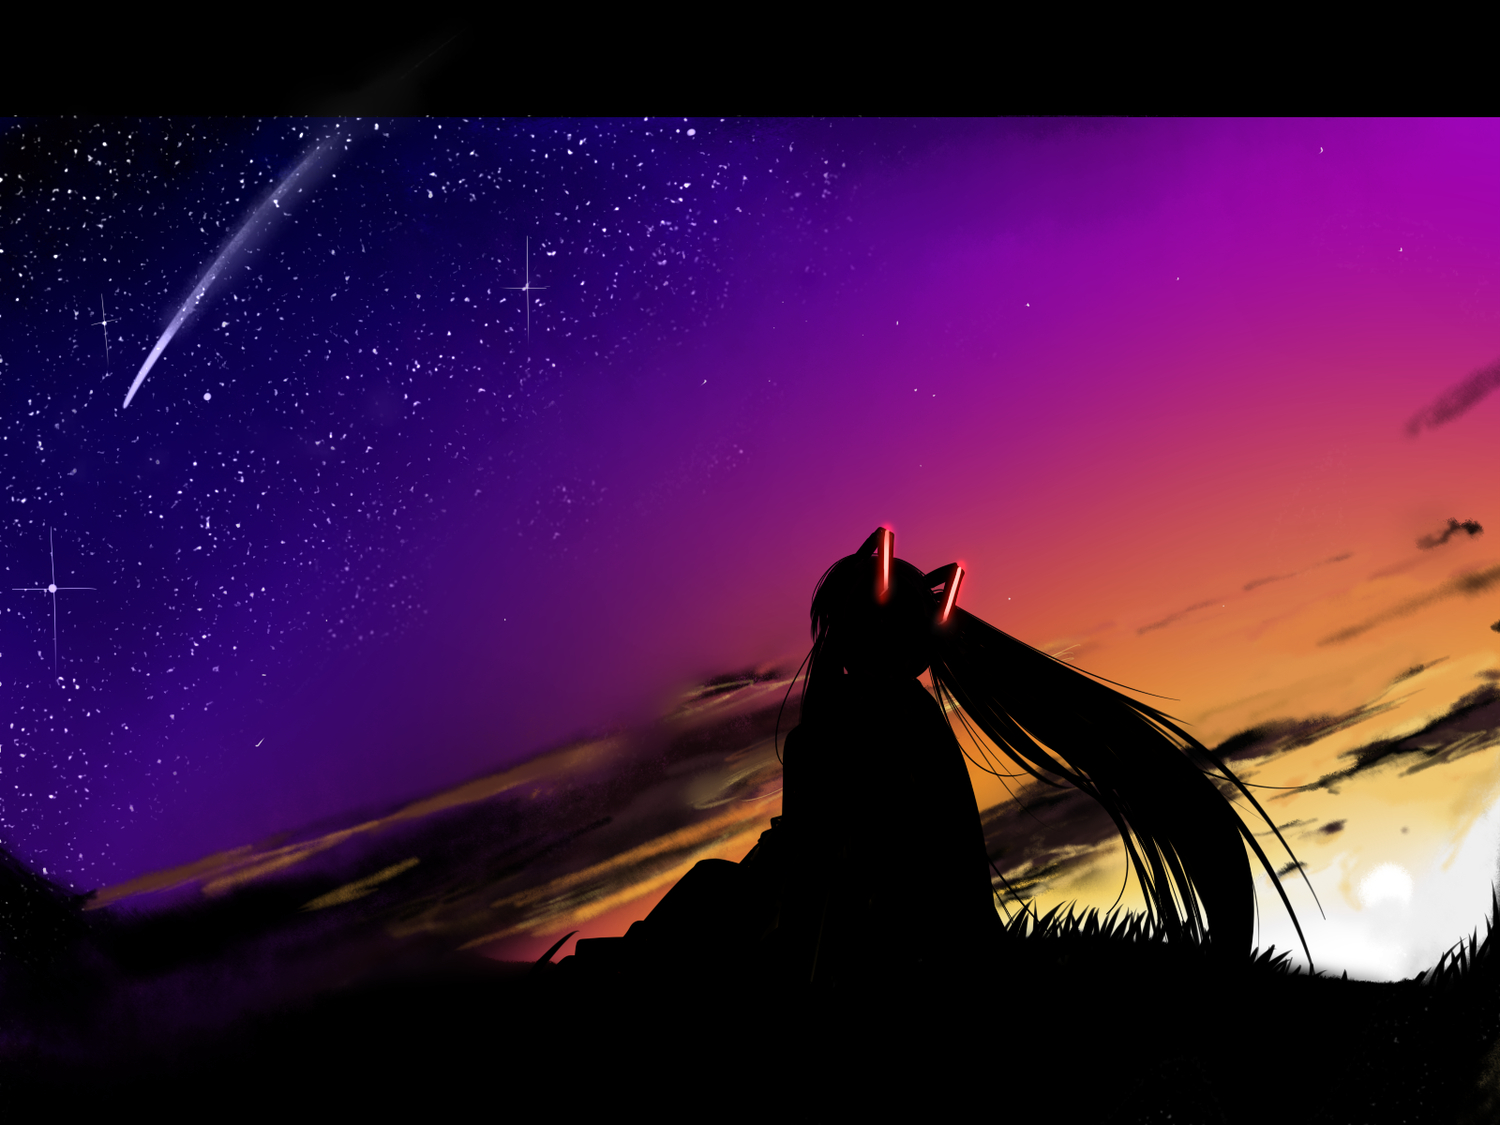 clouds dark hatsune_miku night silhouette sky stars sunset twintails vocaloid